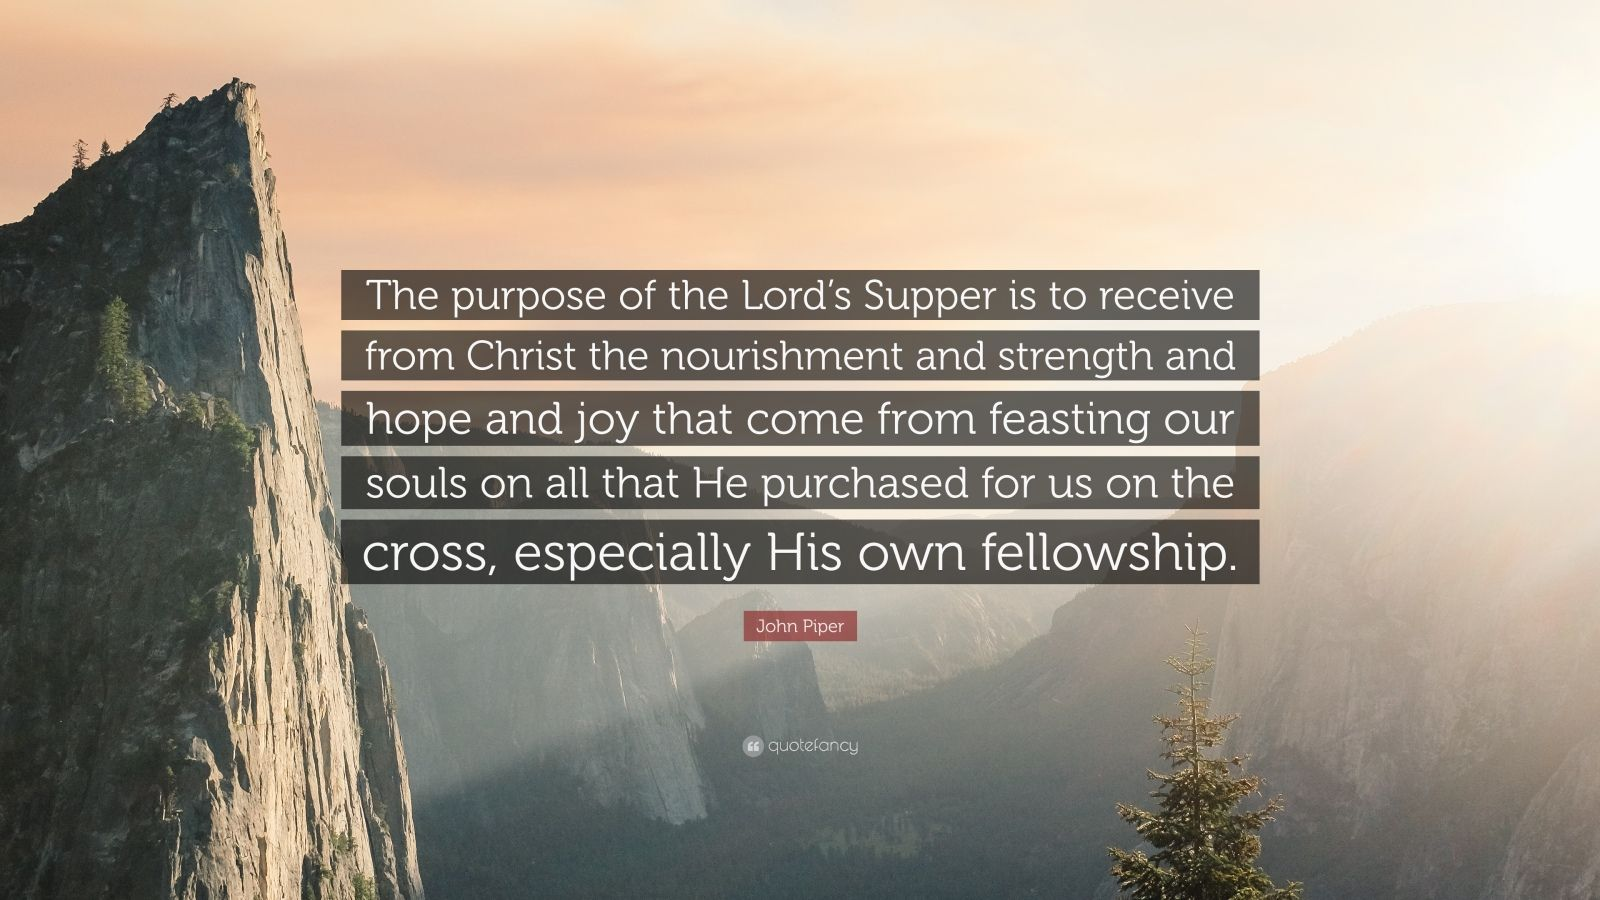 """John Piper Quote: """"The purpose of the Lord's Supper is to receive from Christ the nourishment and strength and hope and joy that come from feasting our souls on all that He purchased for us on the cross, especially His own fellowship."""""""